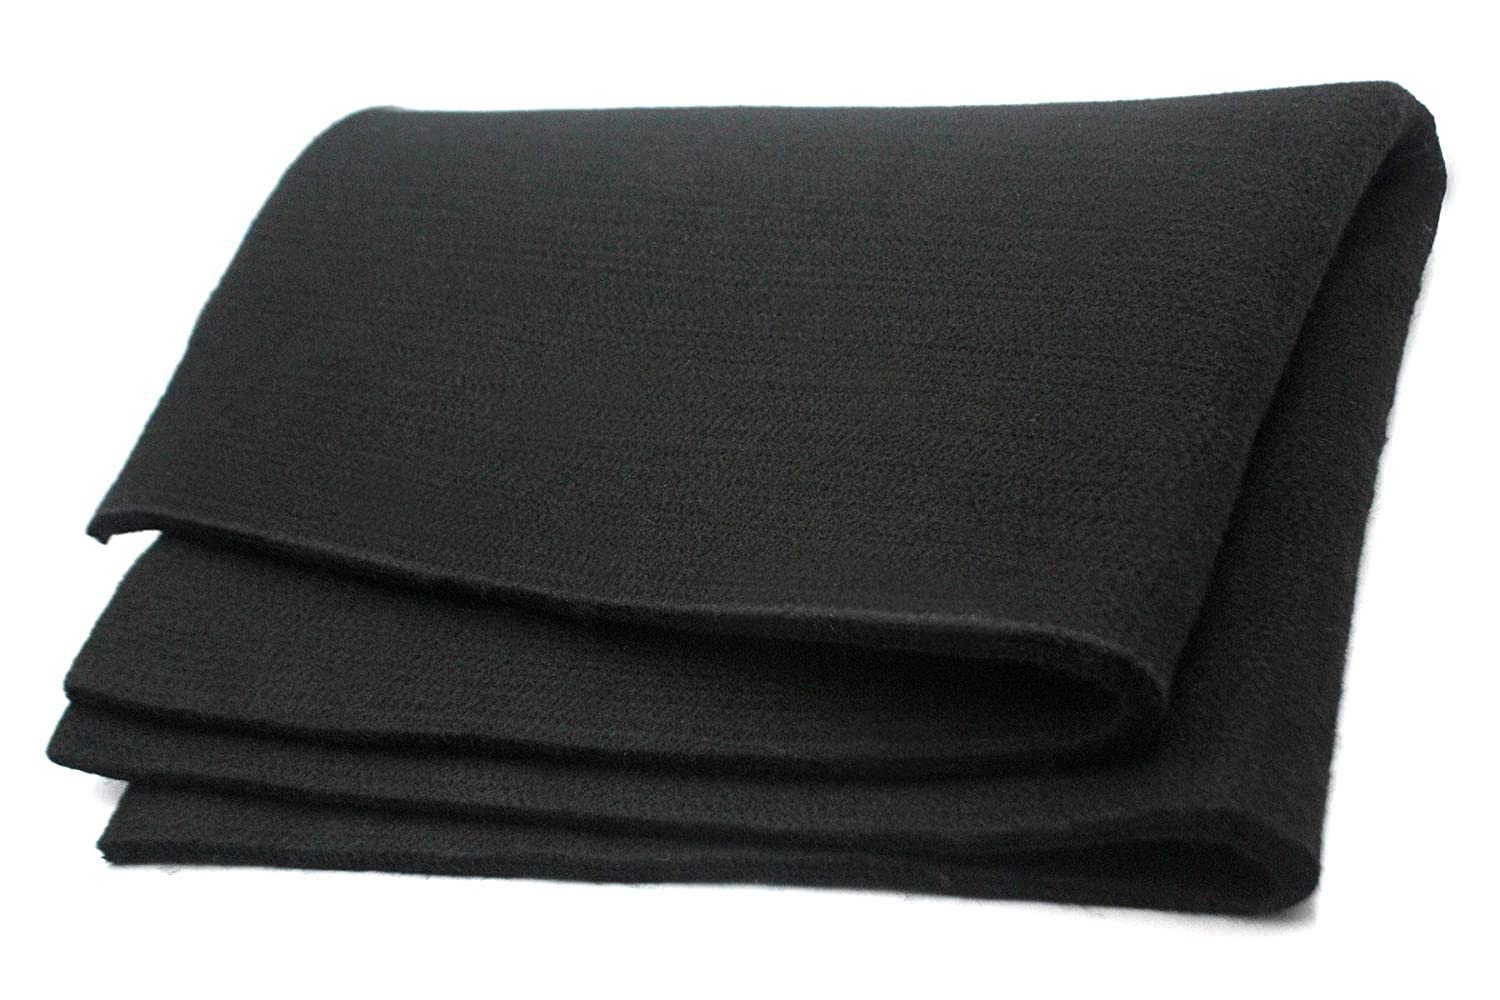 Welding Blanket Felt Carbon Fiber Fire Blanket Protect Work Area from Sparks Black 24 x 18 x 0.24inches